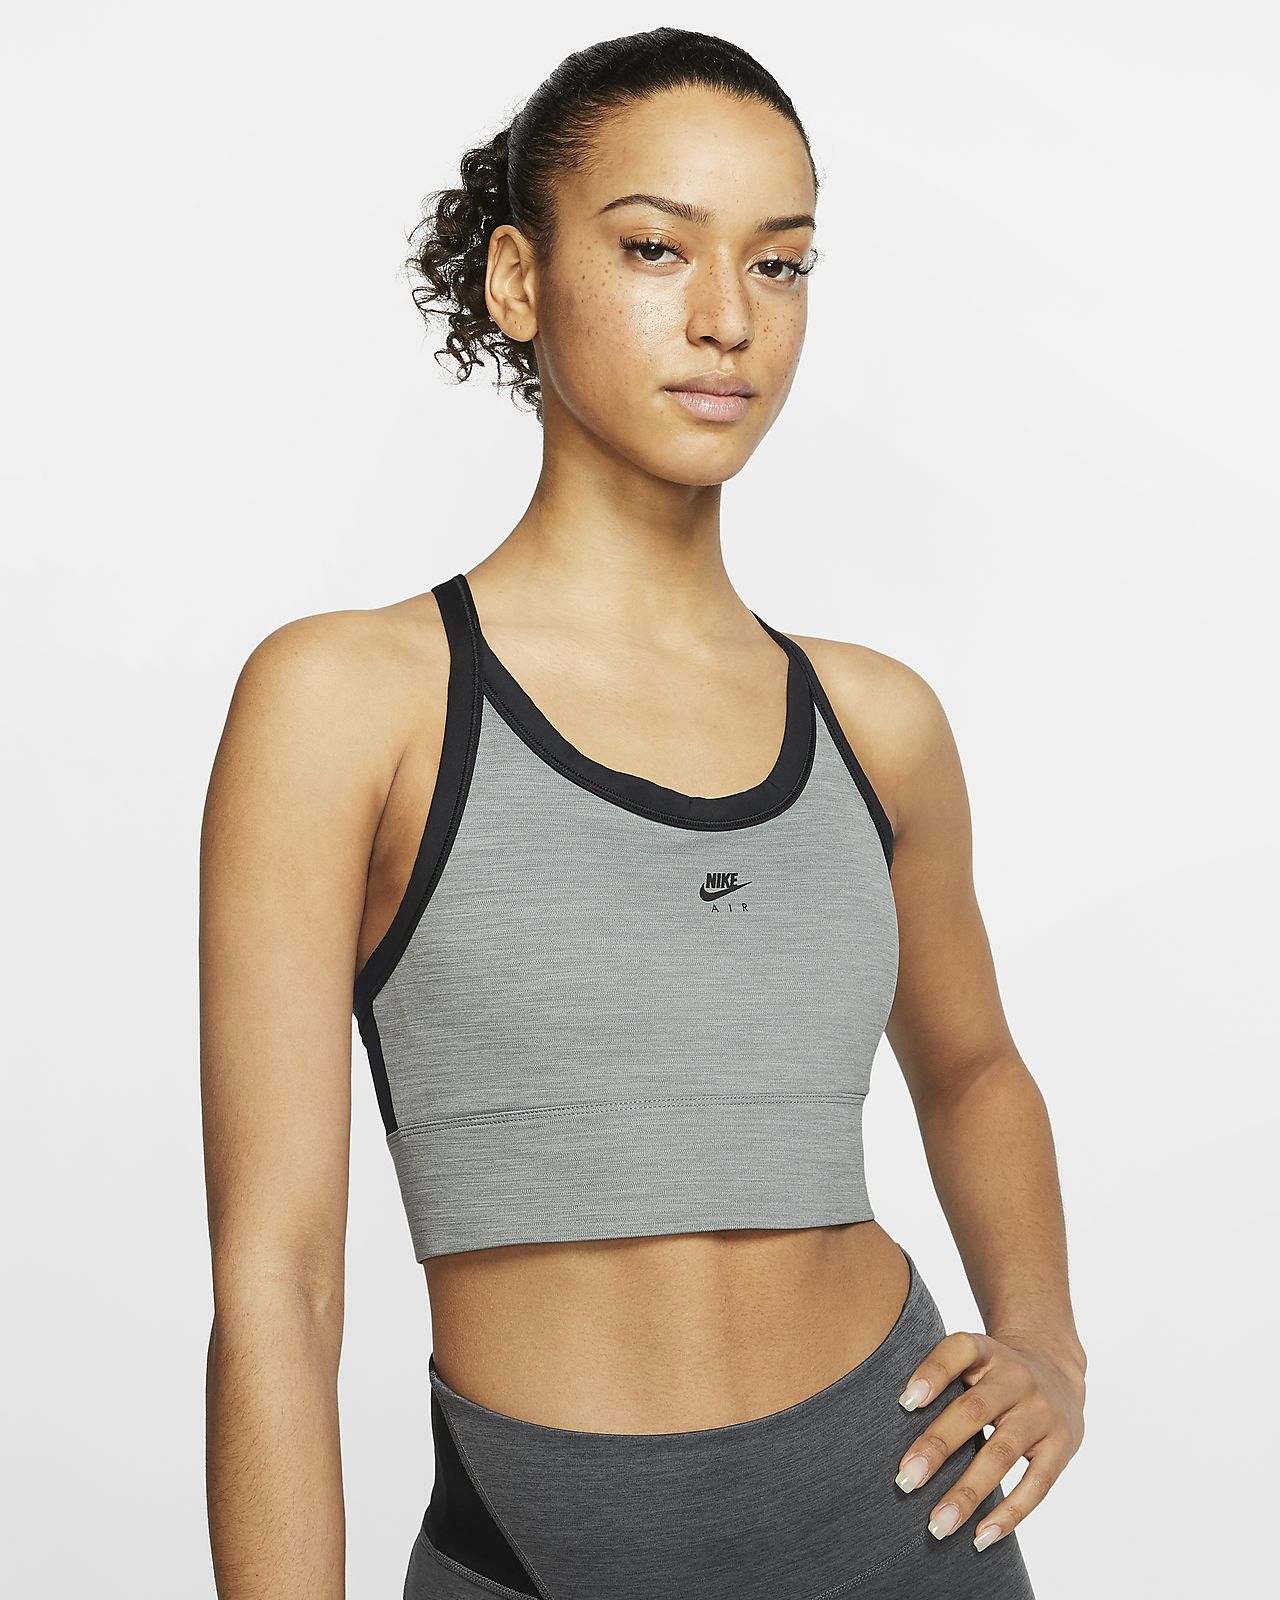 Nike Air Swoosh Women's Medium-Support 1-Piece Pad Sports Bra